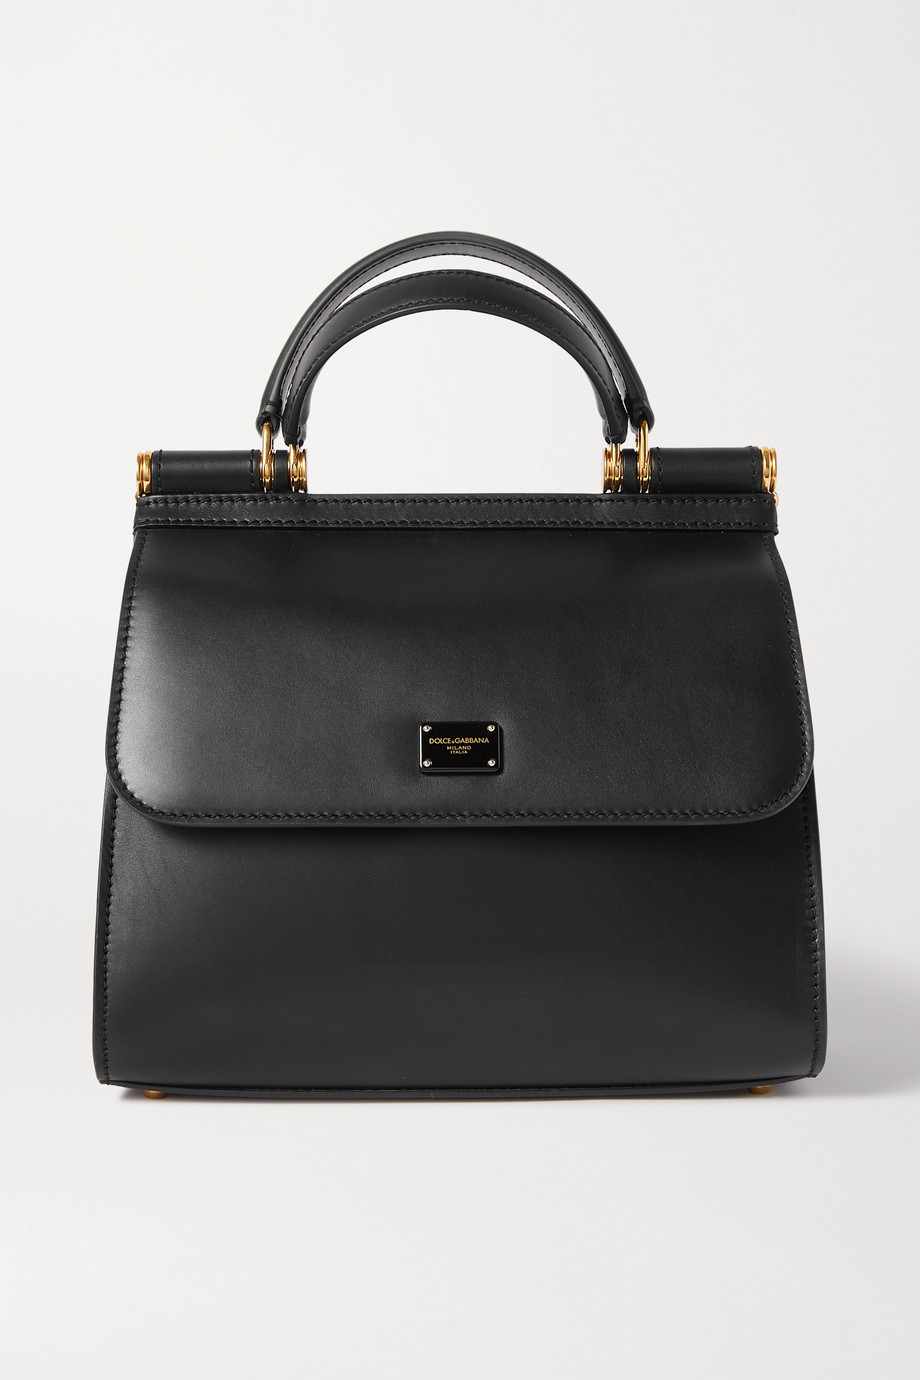 Dolce & Gabbana Sicily 58 small leather tote